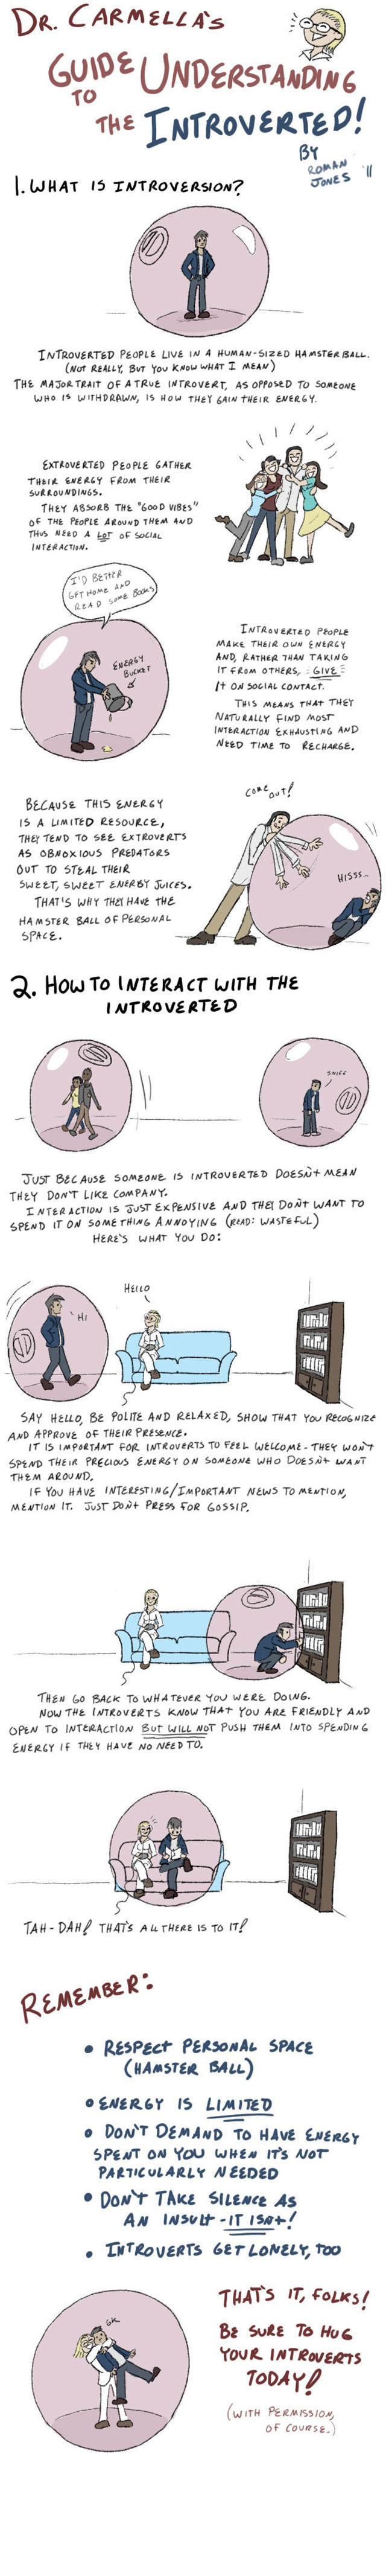 Cartoons That All Introverts Will Relate To